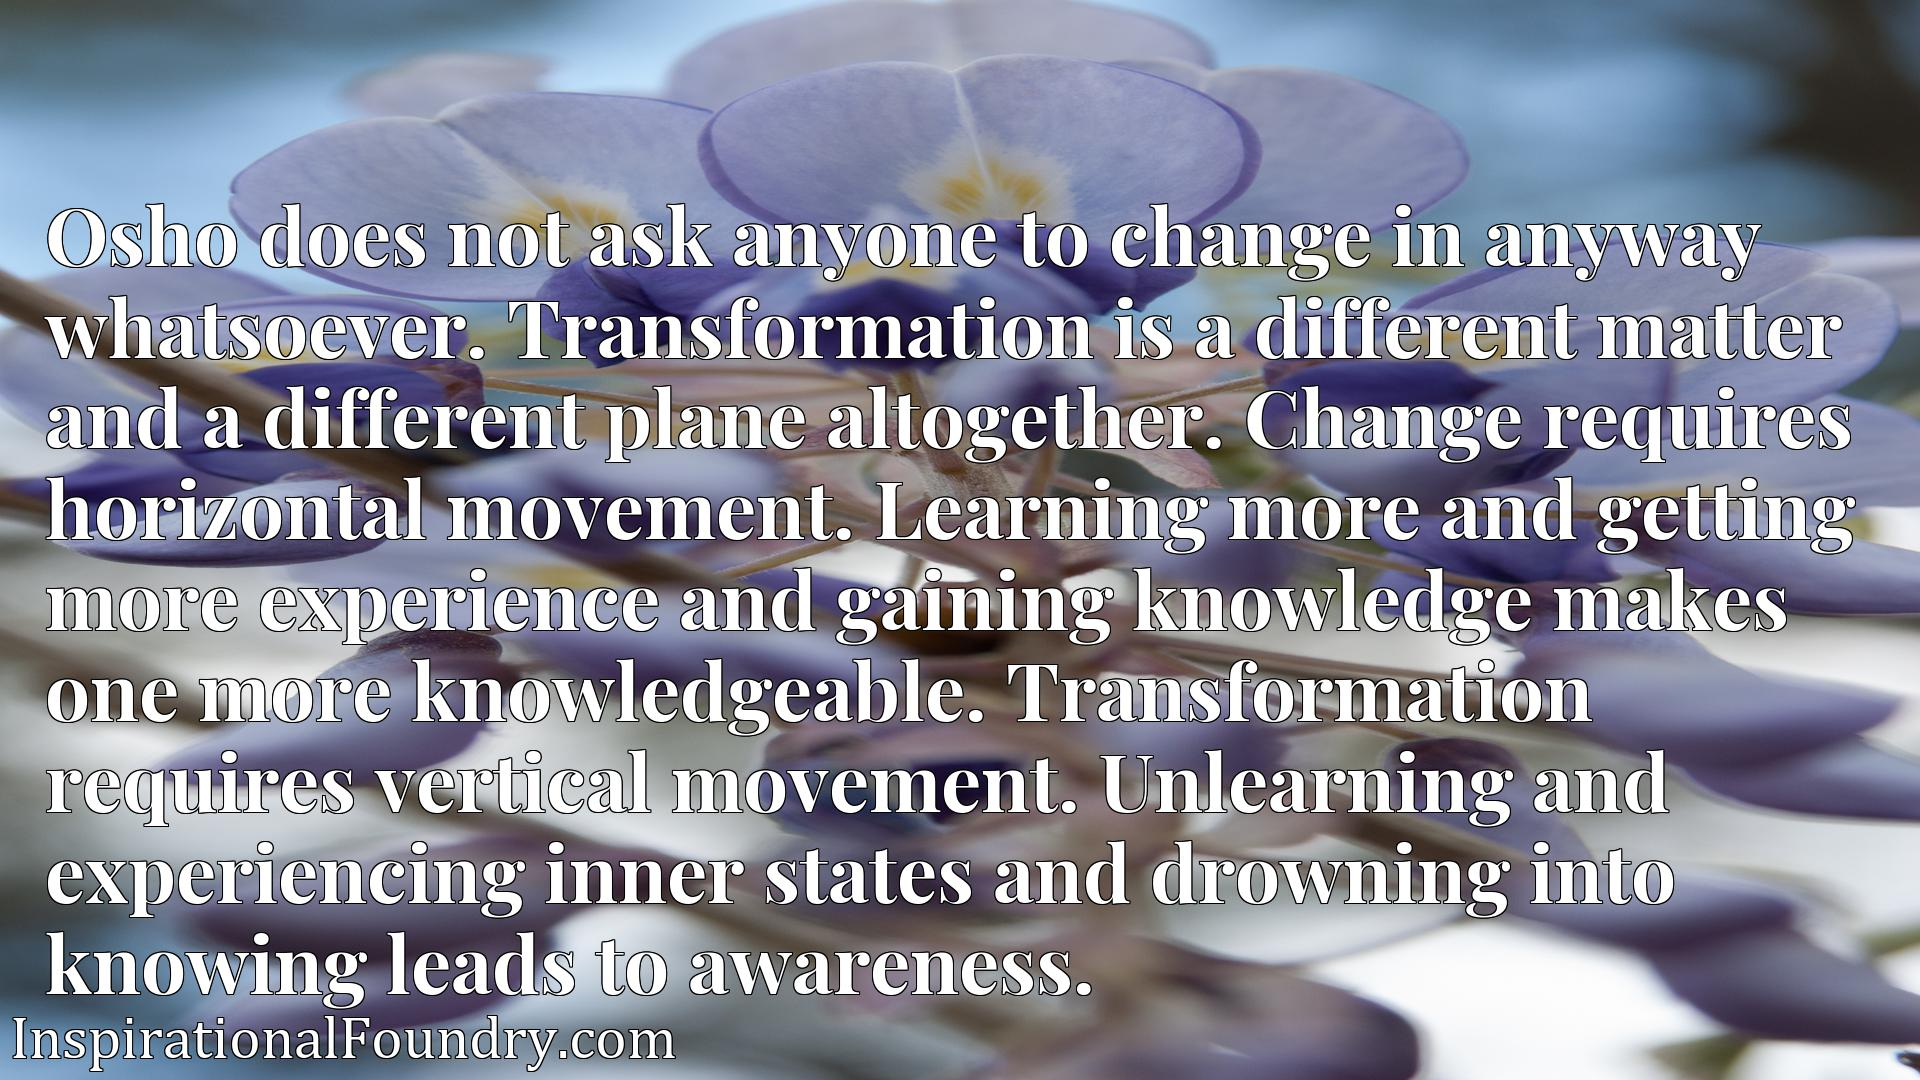 Osho does not ask anyone to change in anyway whatsoever. Transformation is a different matter and a different plane altogether. Change requires horizontal movement. Learning more and getting more experience and gaining knowledge makes one more knowledgeable. Transformation requires vertical movement. Unlearning and experiencing inner states and drowning into knowing leads to awareness.